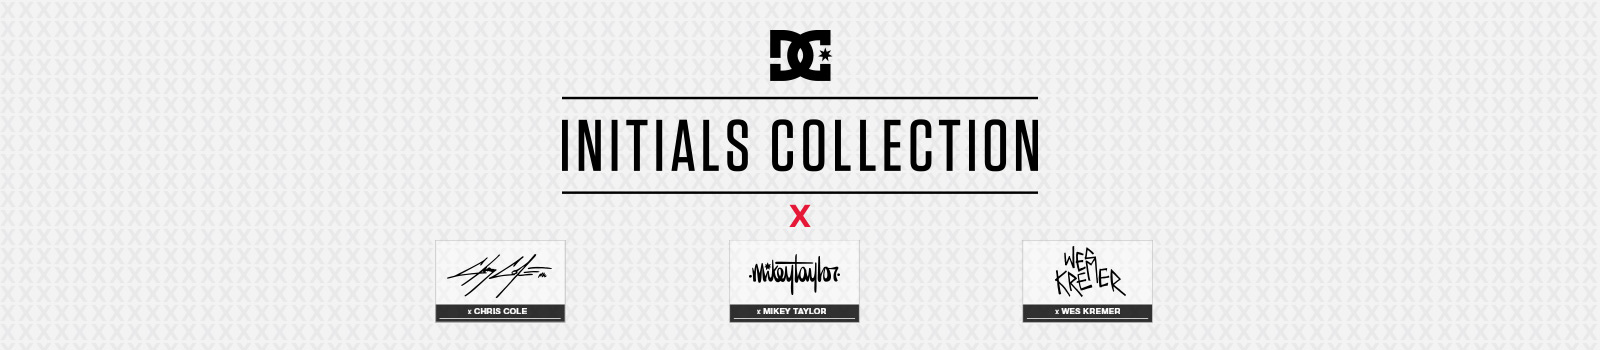 Initials Collection by DC Shoes